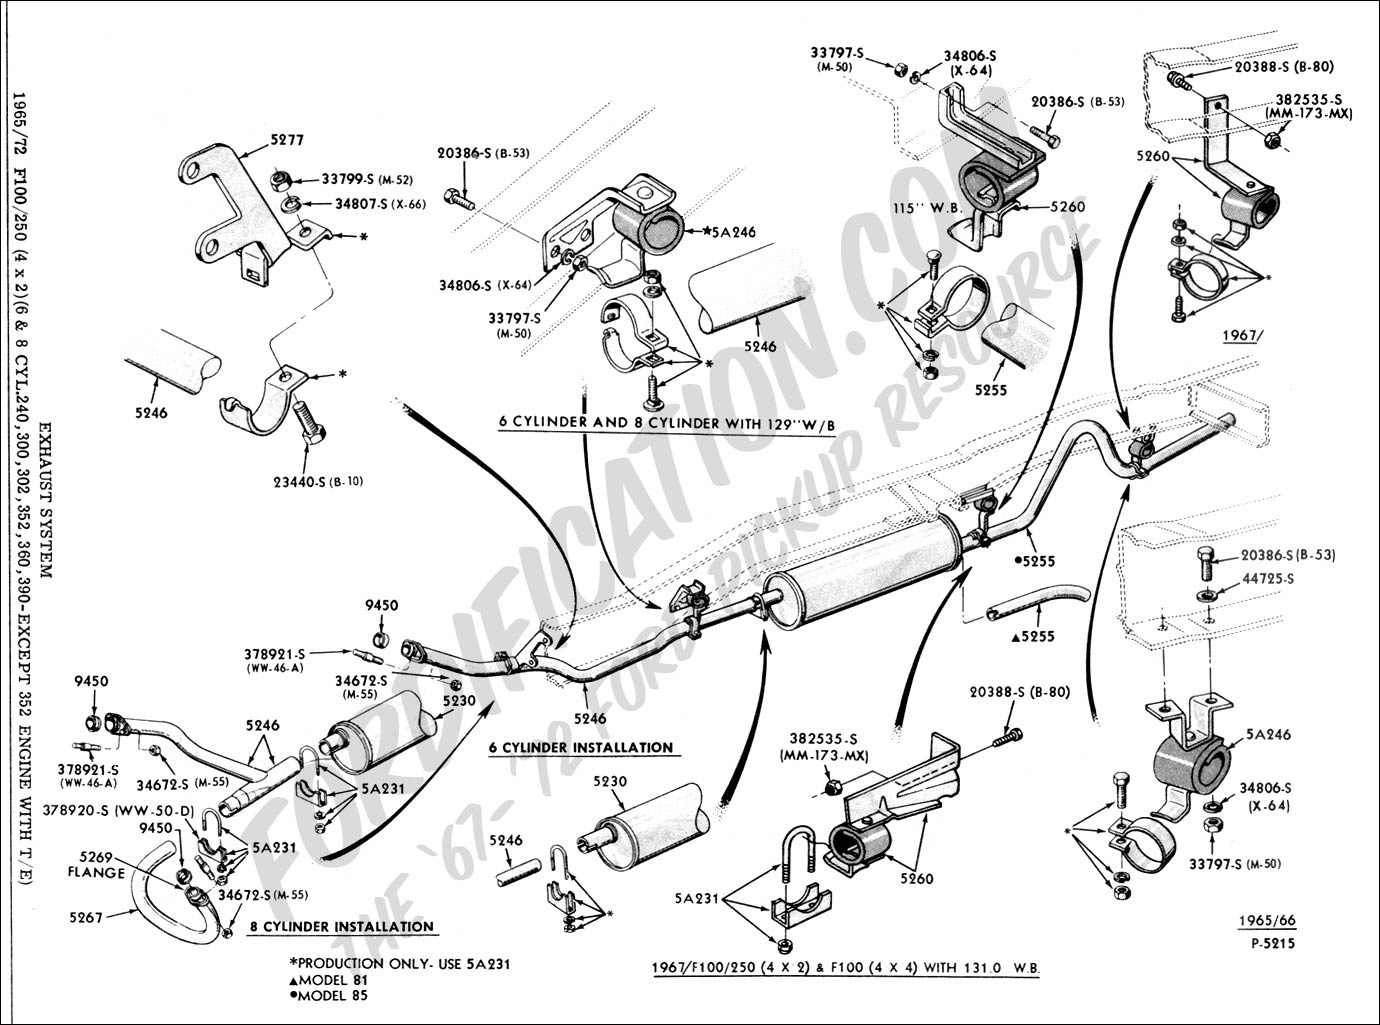 hight resolution of ford truck 1990 f150 fuel line diagram simple wiring schema ford fuel pump relay diagram 1992 ford f150 fuel line diagram